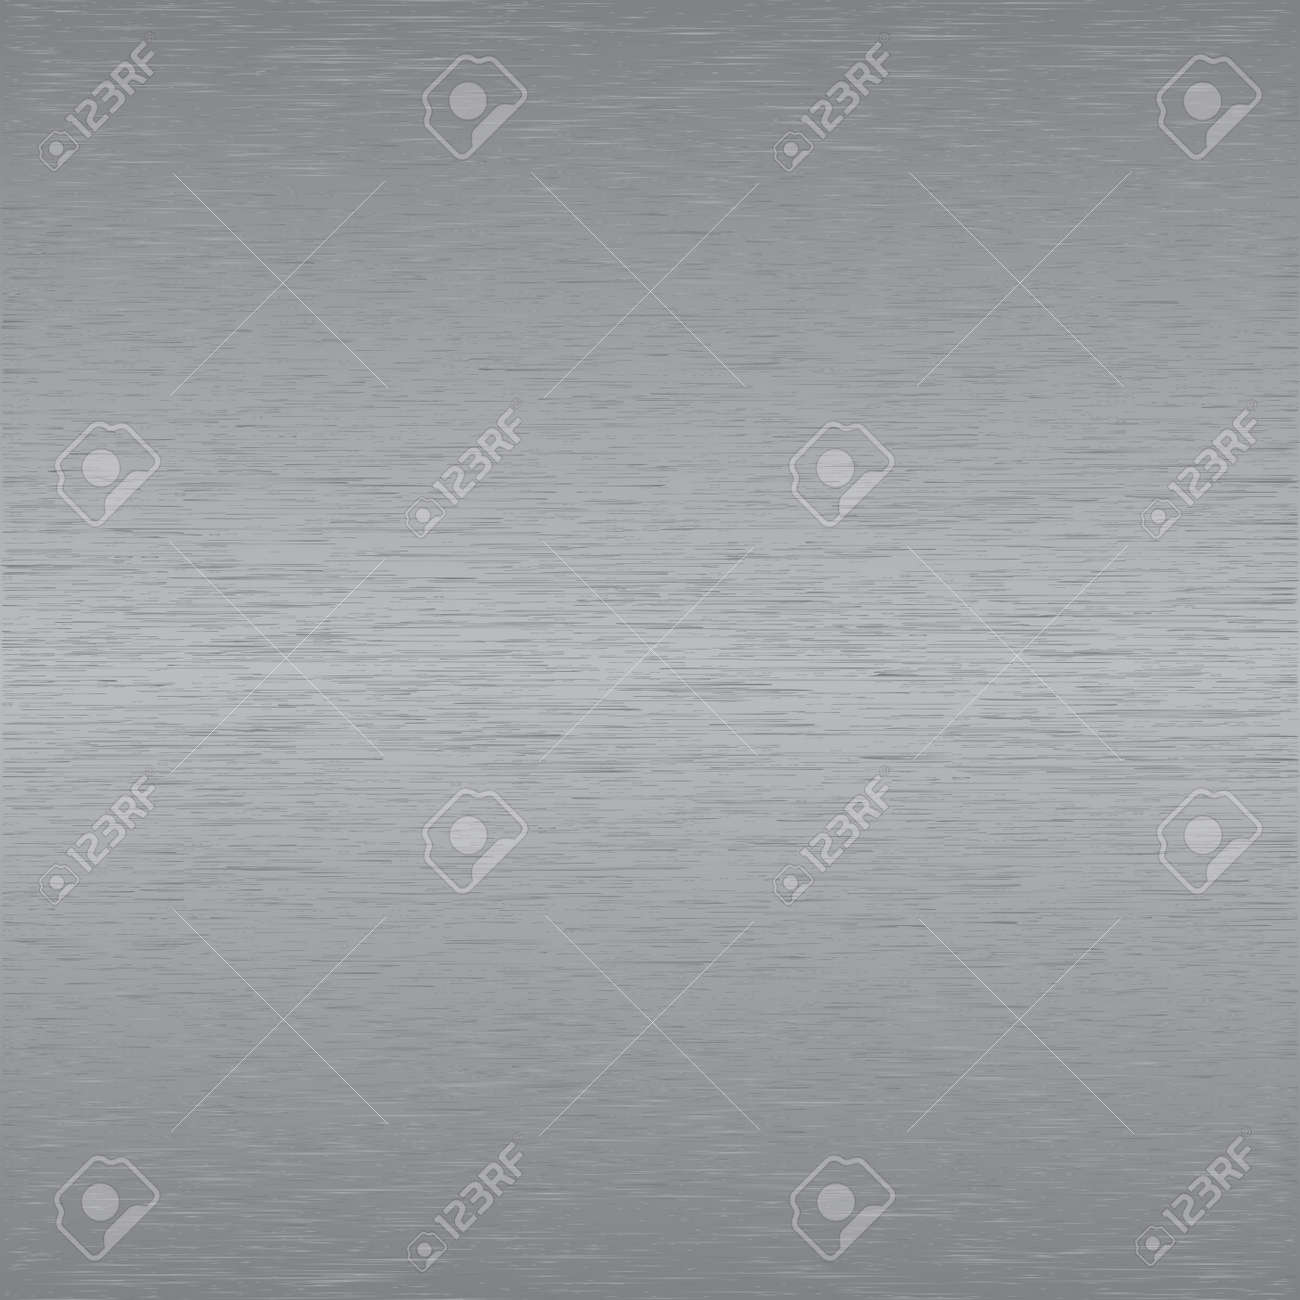 Vector - Brushed metal or aluminium effect for background use. Stock Vector - 3064041